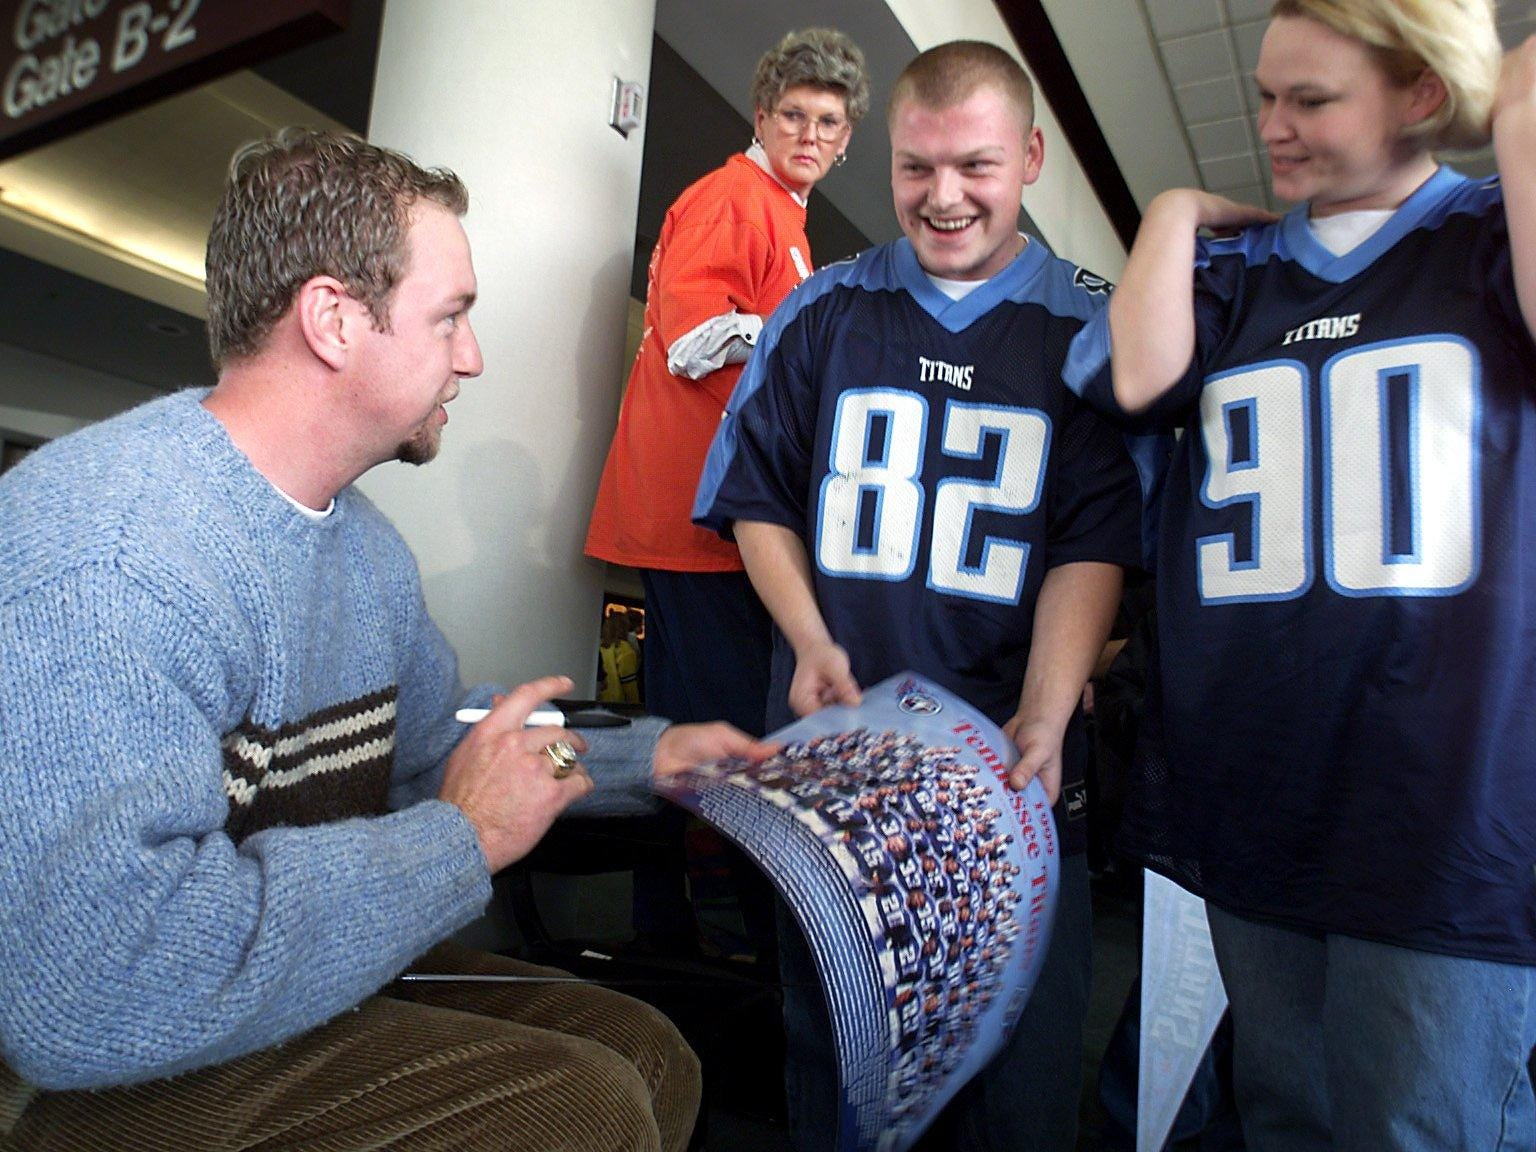 Craig Hentrich punter of the Tennessee Titans signs his autograph for Thomas Smith and Heather Smith of Nashville at the Nashville International Airport gate Jan. 15, 2000 before leaving for Indianapolis to face the Colts in the divisional play-off game.